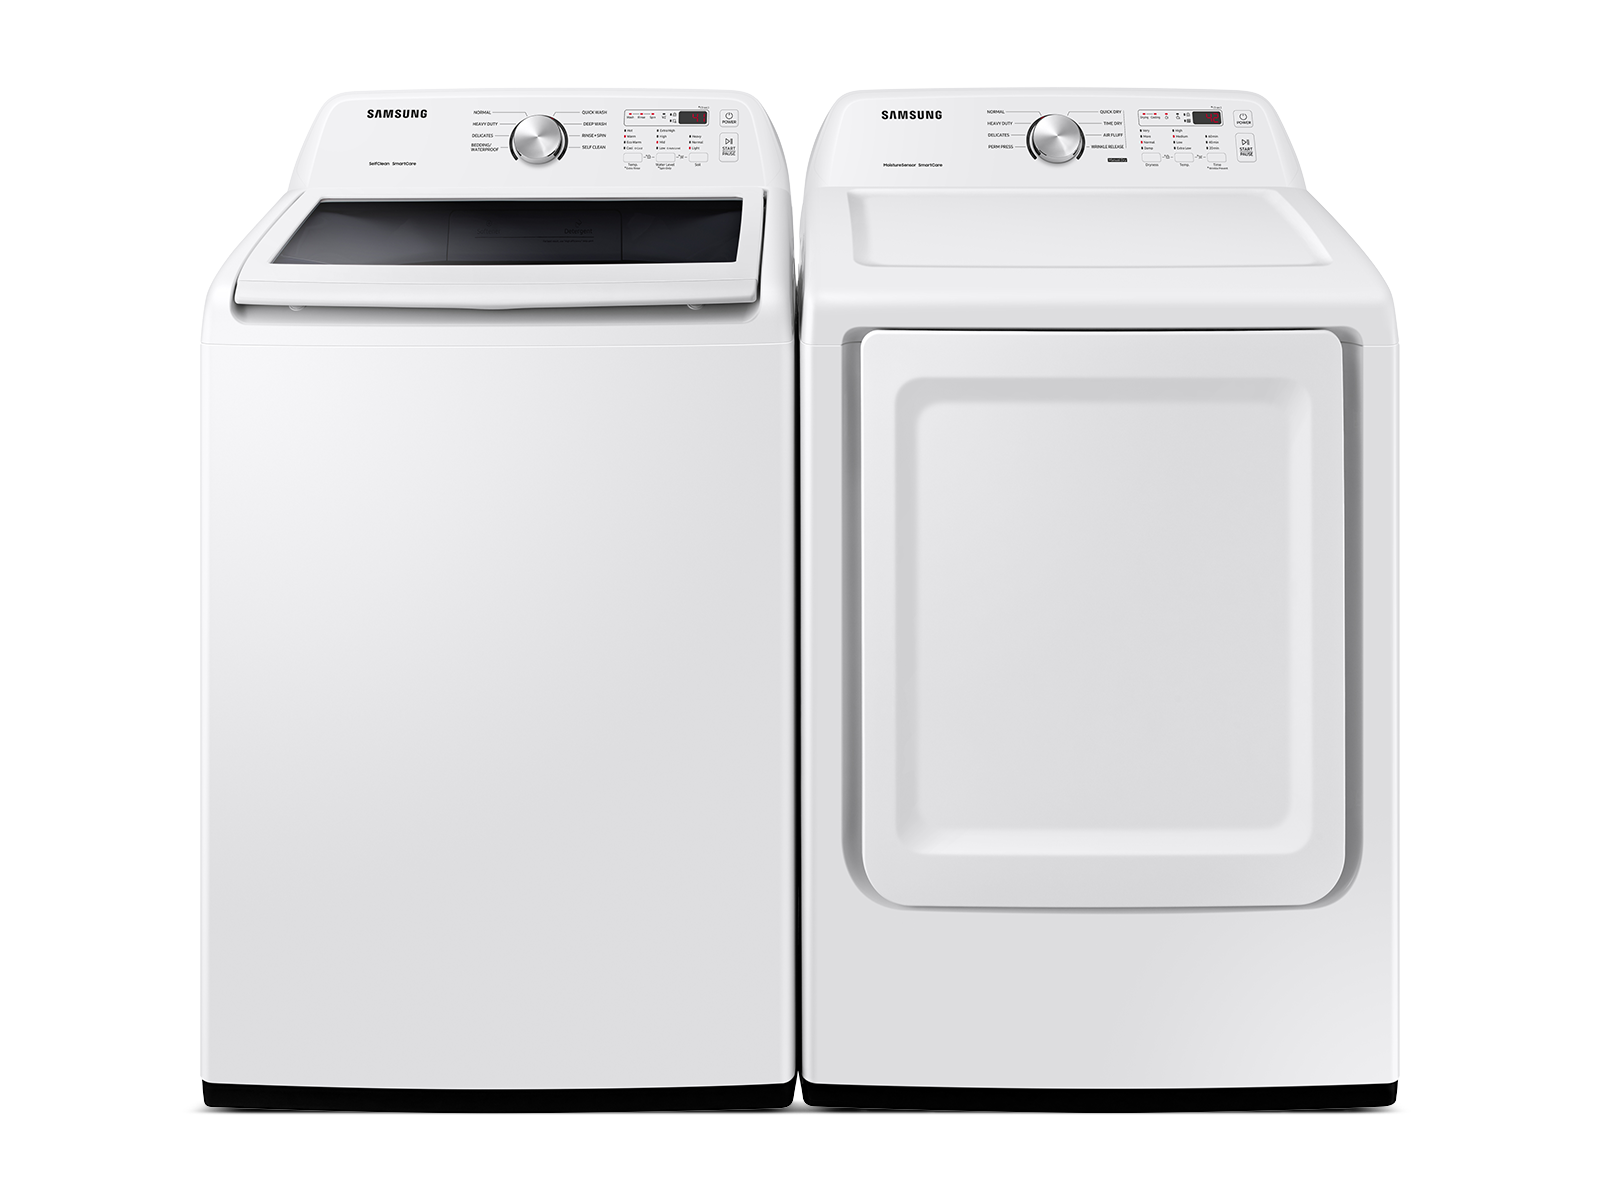 Samsung coupon: Samsung Top Load Washer & Dryer Set with Vibration Reduction Technology+ and Sensor Dry in White(BNDL-1603923099314)